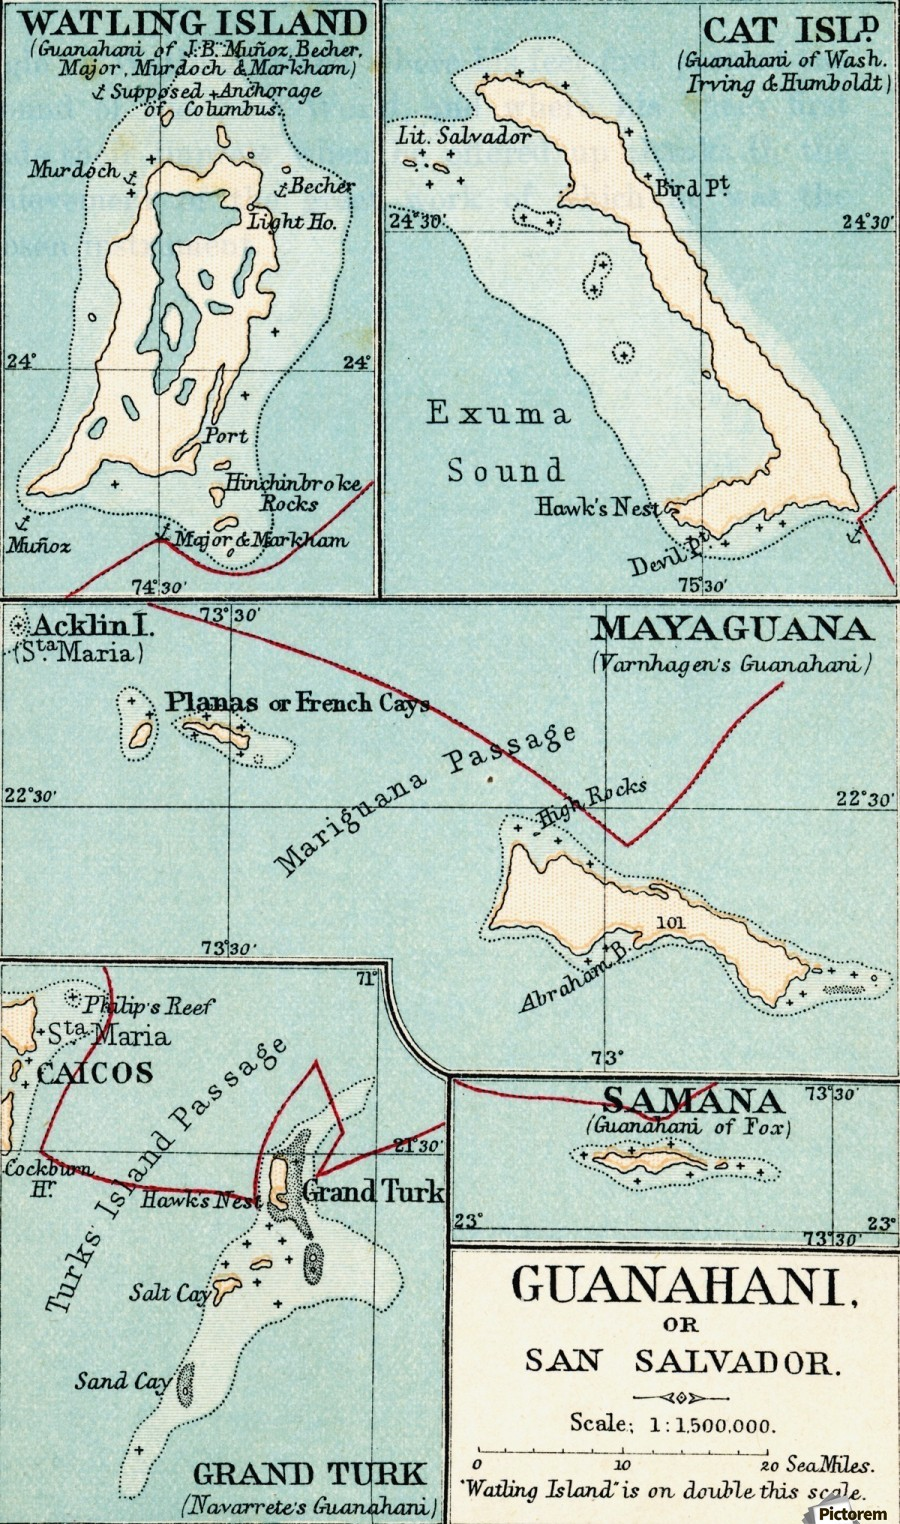 Map of Guanahani or San Salvador showing Watling Island where Christopher Printable Pictures Of A Map Before Columbus on printable map nc, aerial view of columbus, printable map ky, printable map wv, printable map texas, google map of columbus, topographical map of columbus, printable map kansas, printable honolulu map, printable map nj, printable map georgia, printable dallas map, printable new orleans map, castle of columbus, printable map ohio,